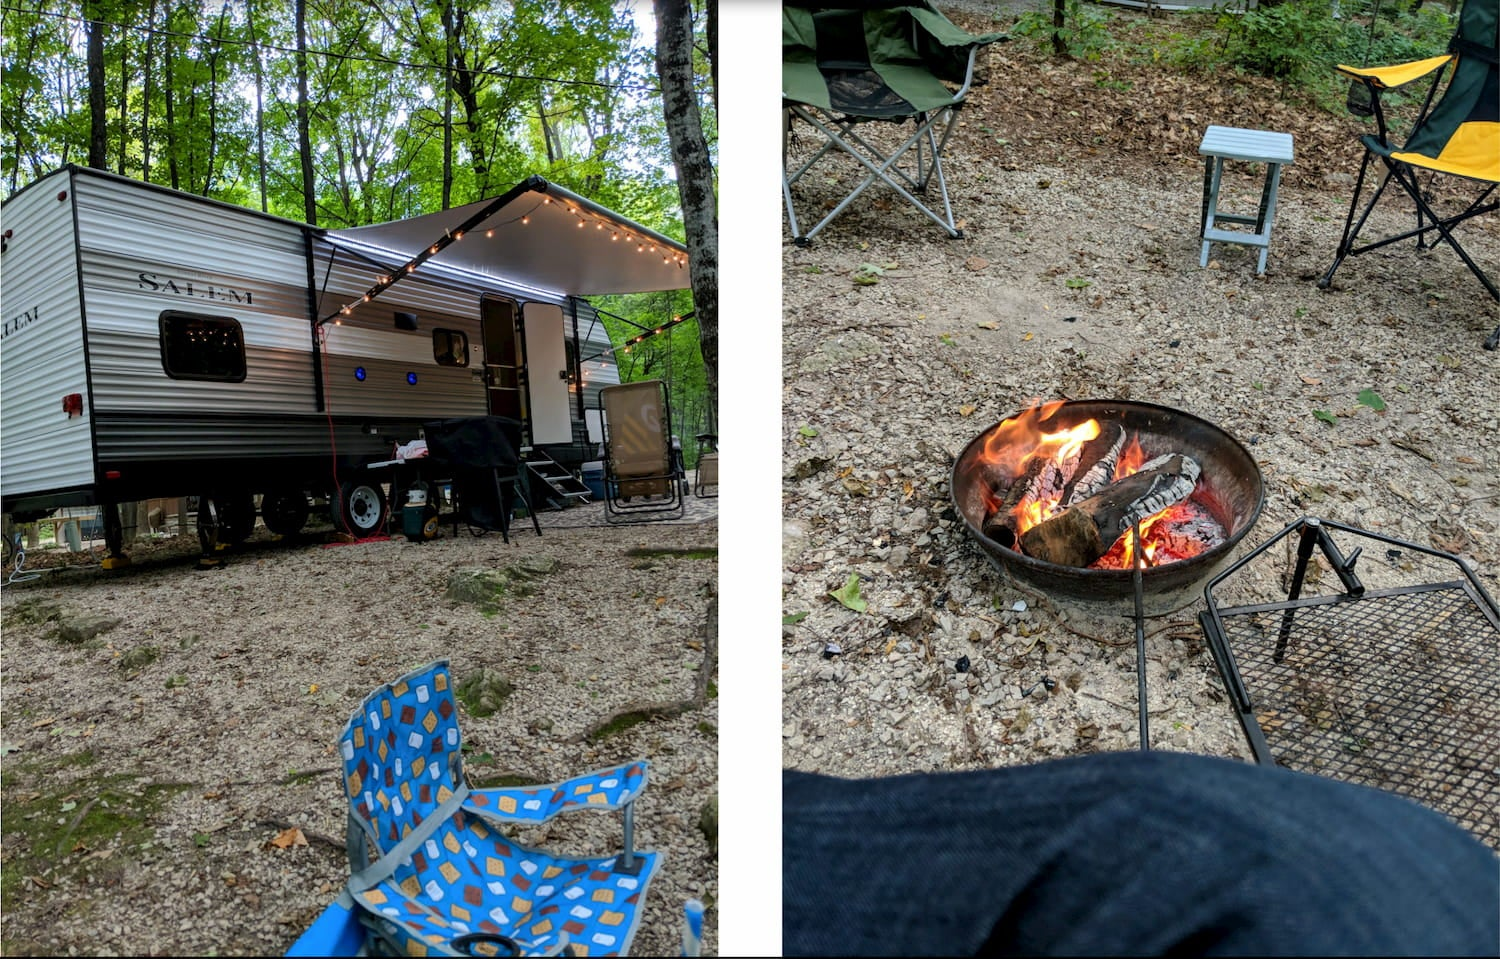 side-by-side images of camper at campsite and campfire